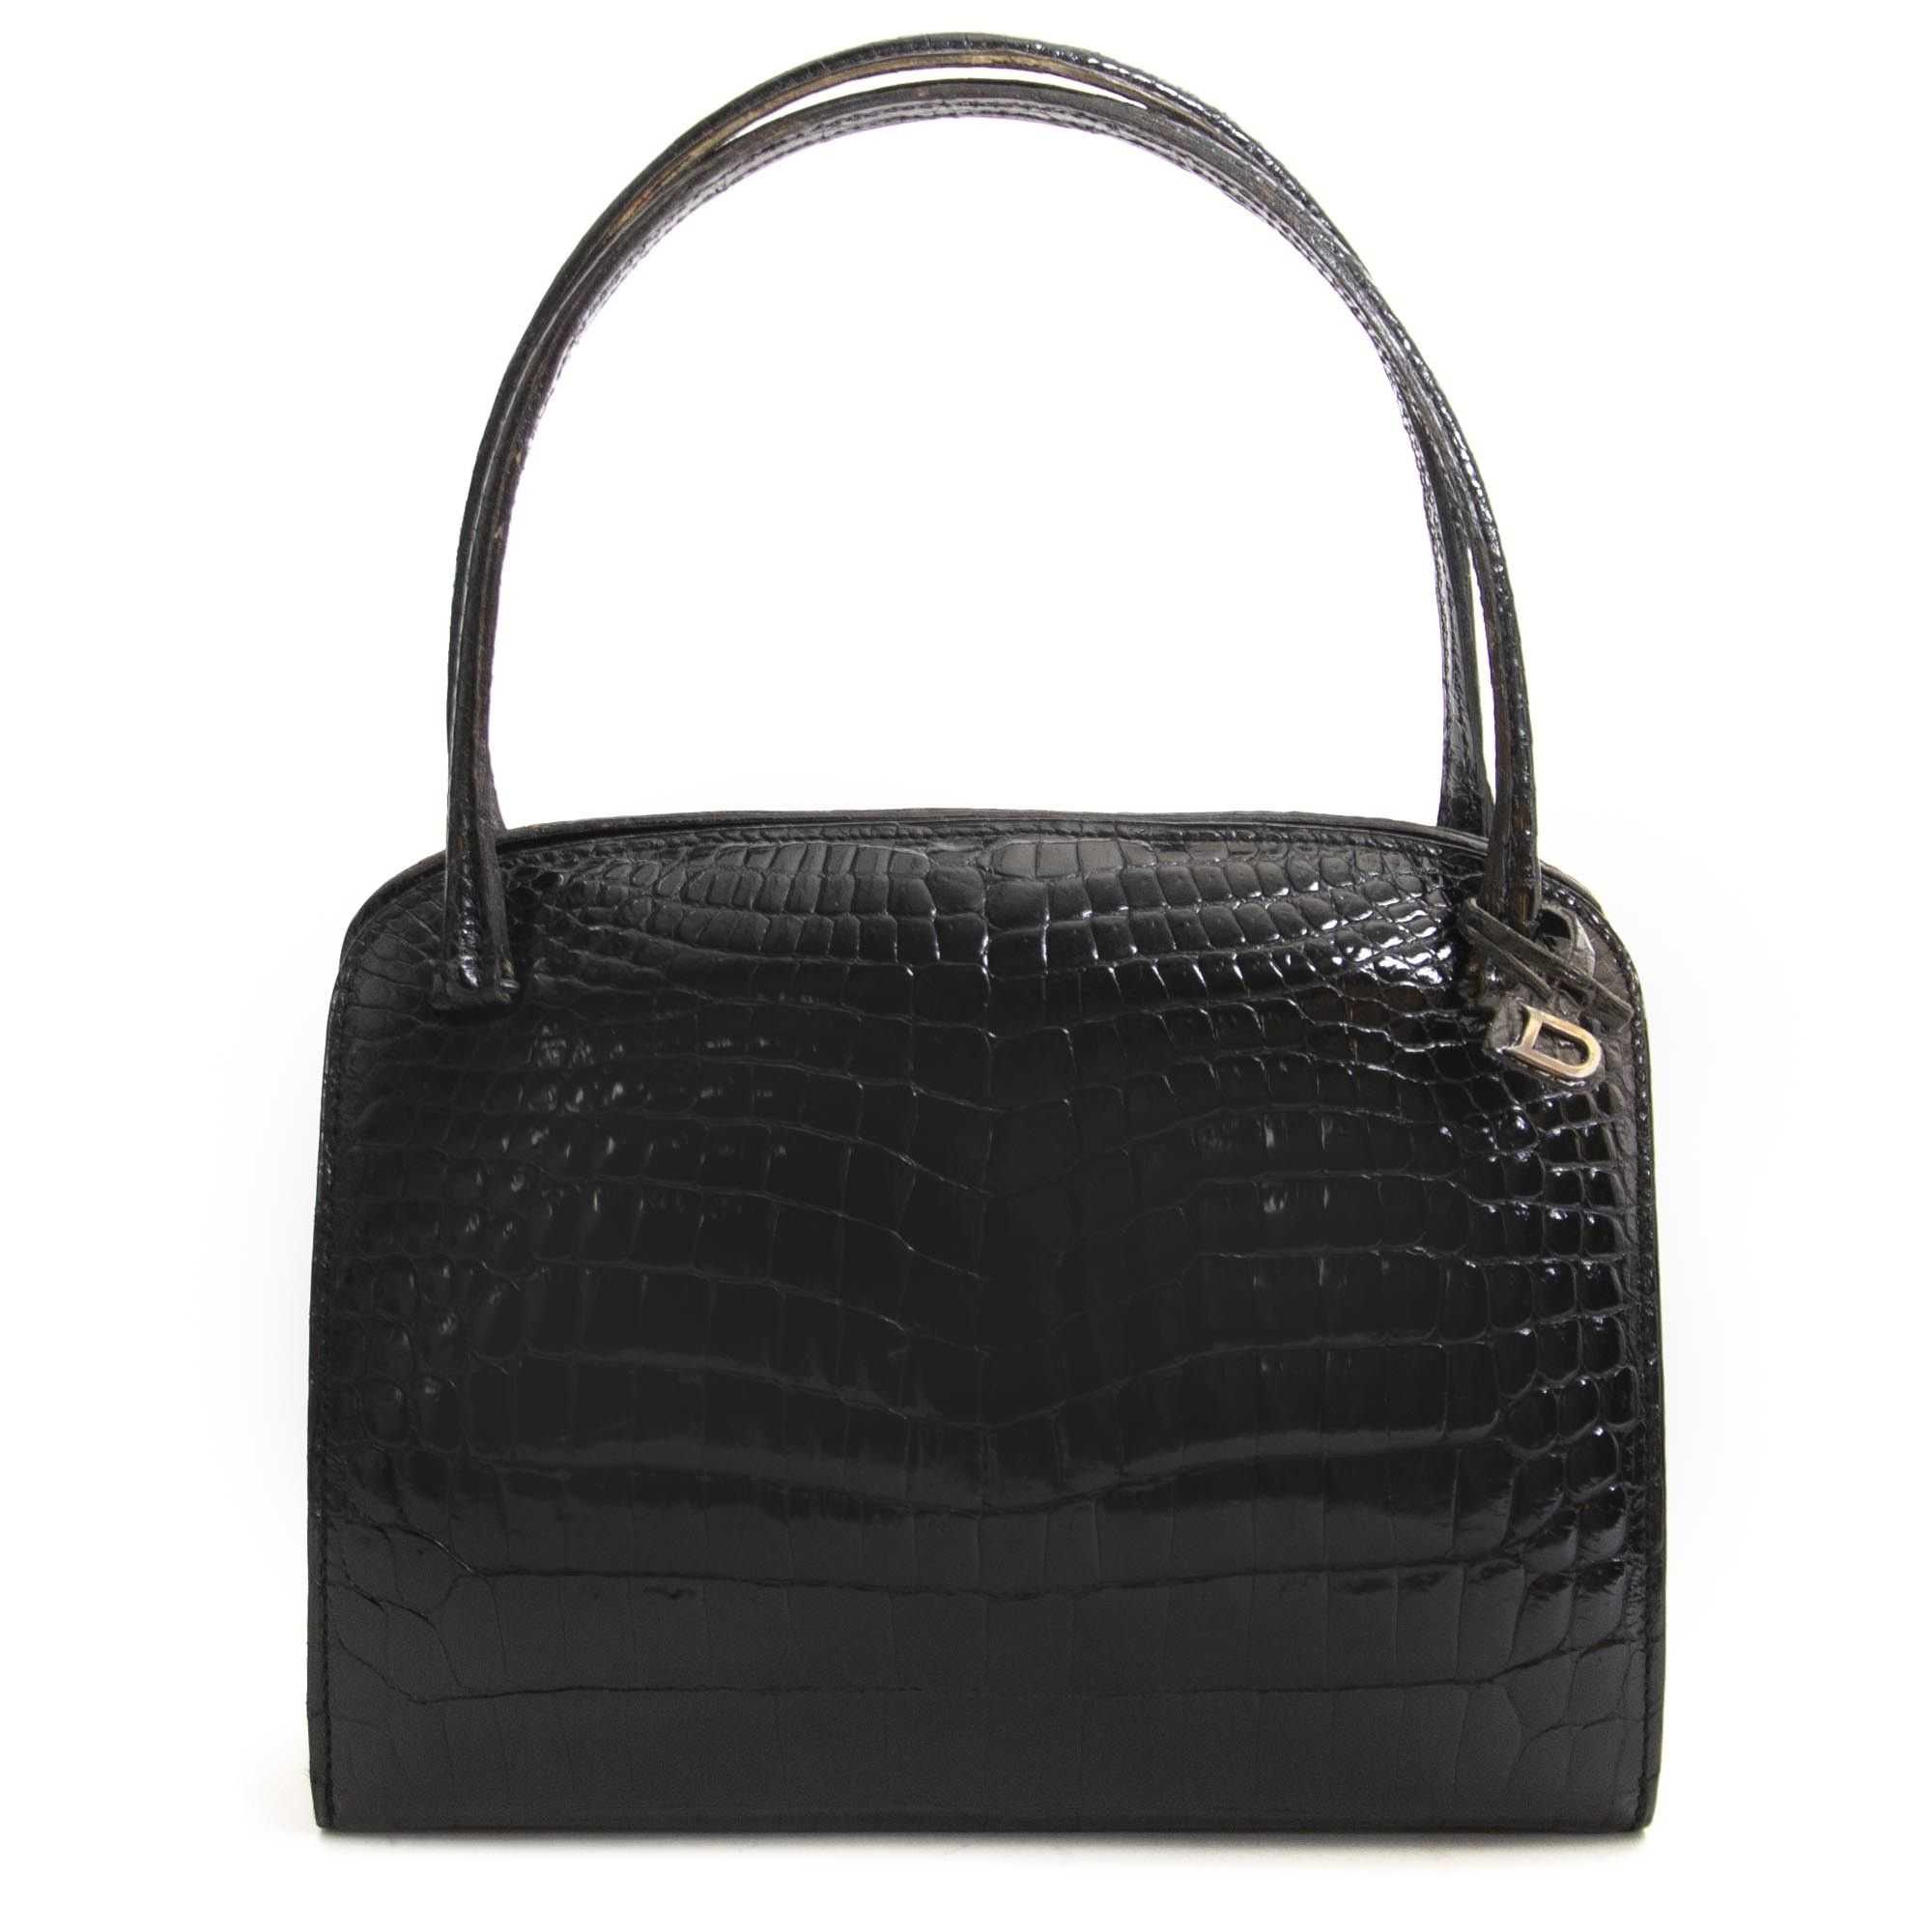 2c2169b78097 Delvaux Vintage Black Croco Top Handle Bag